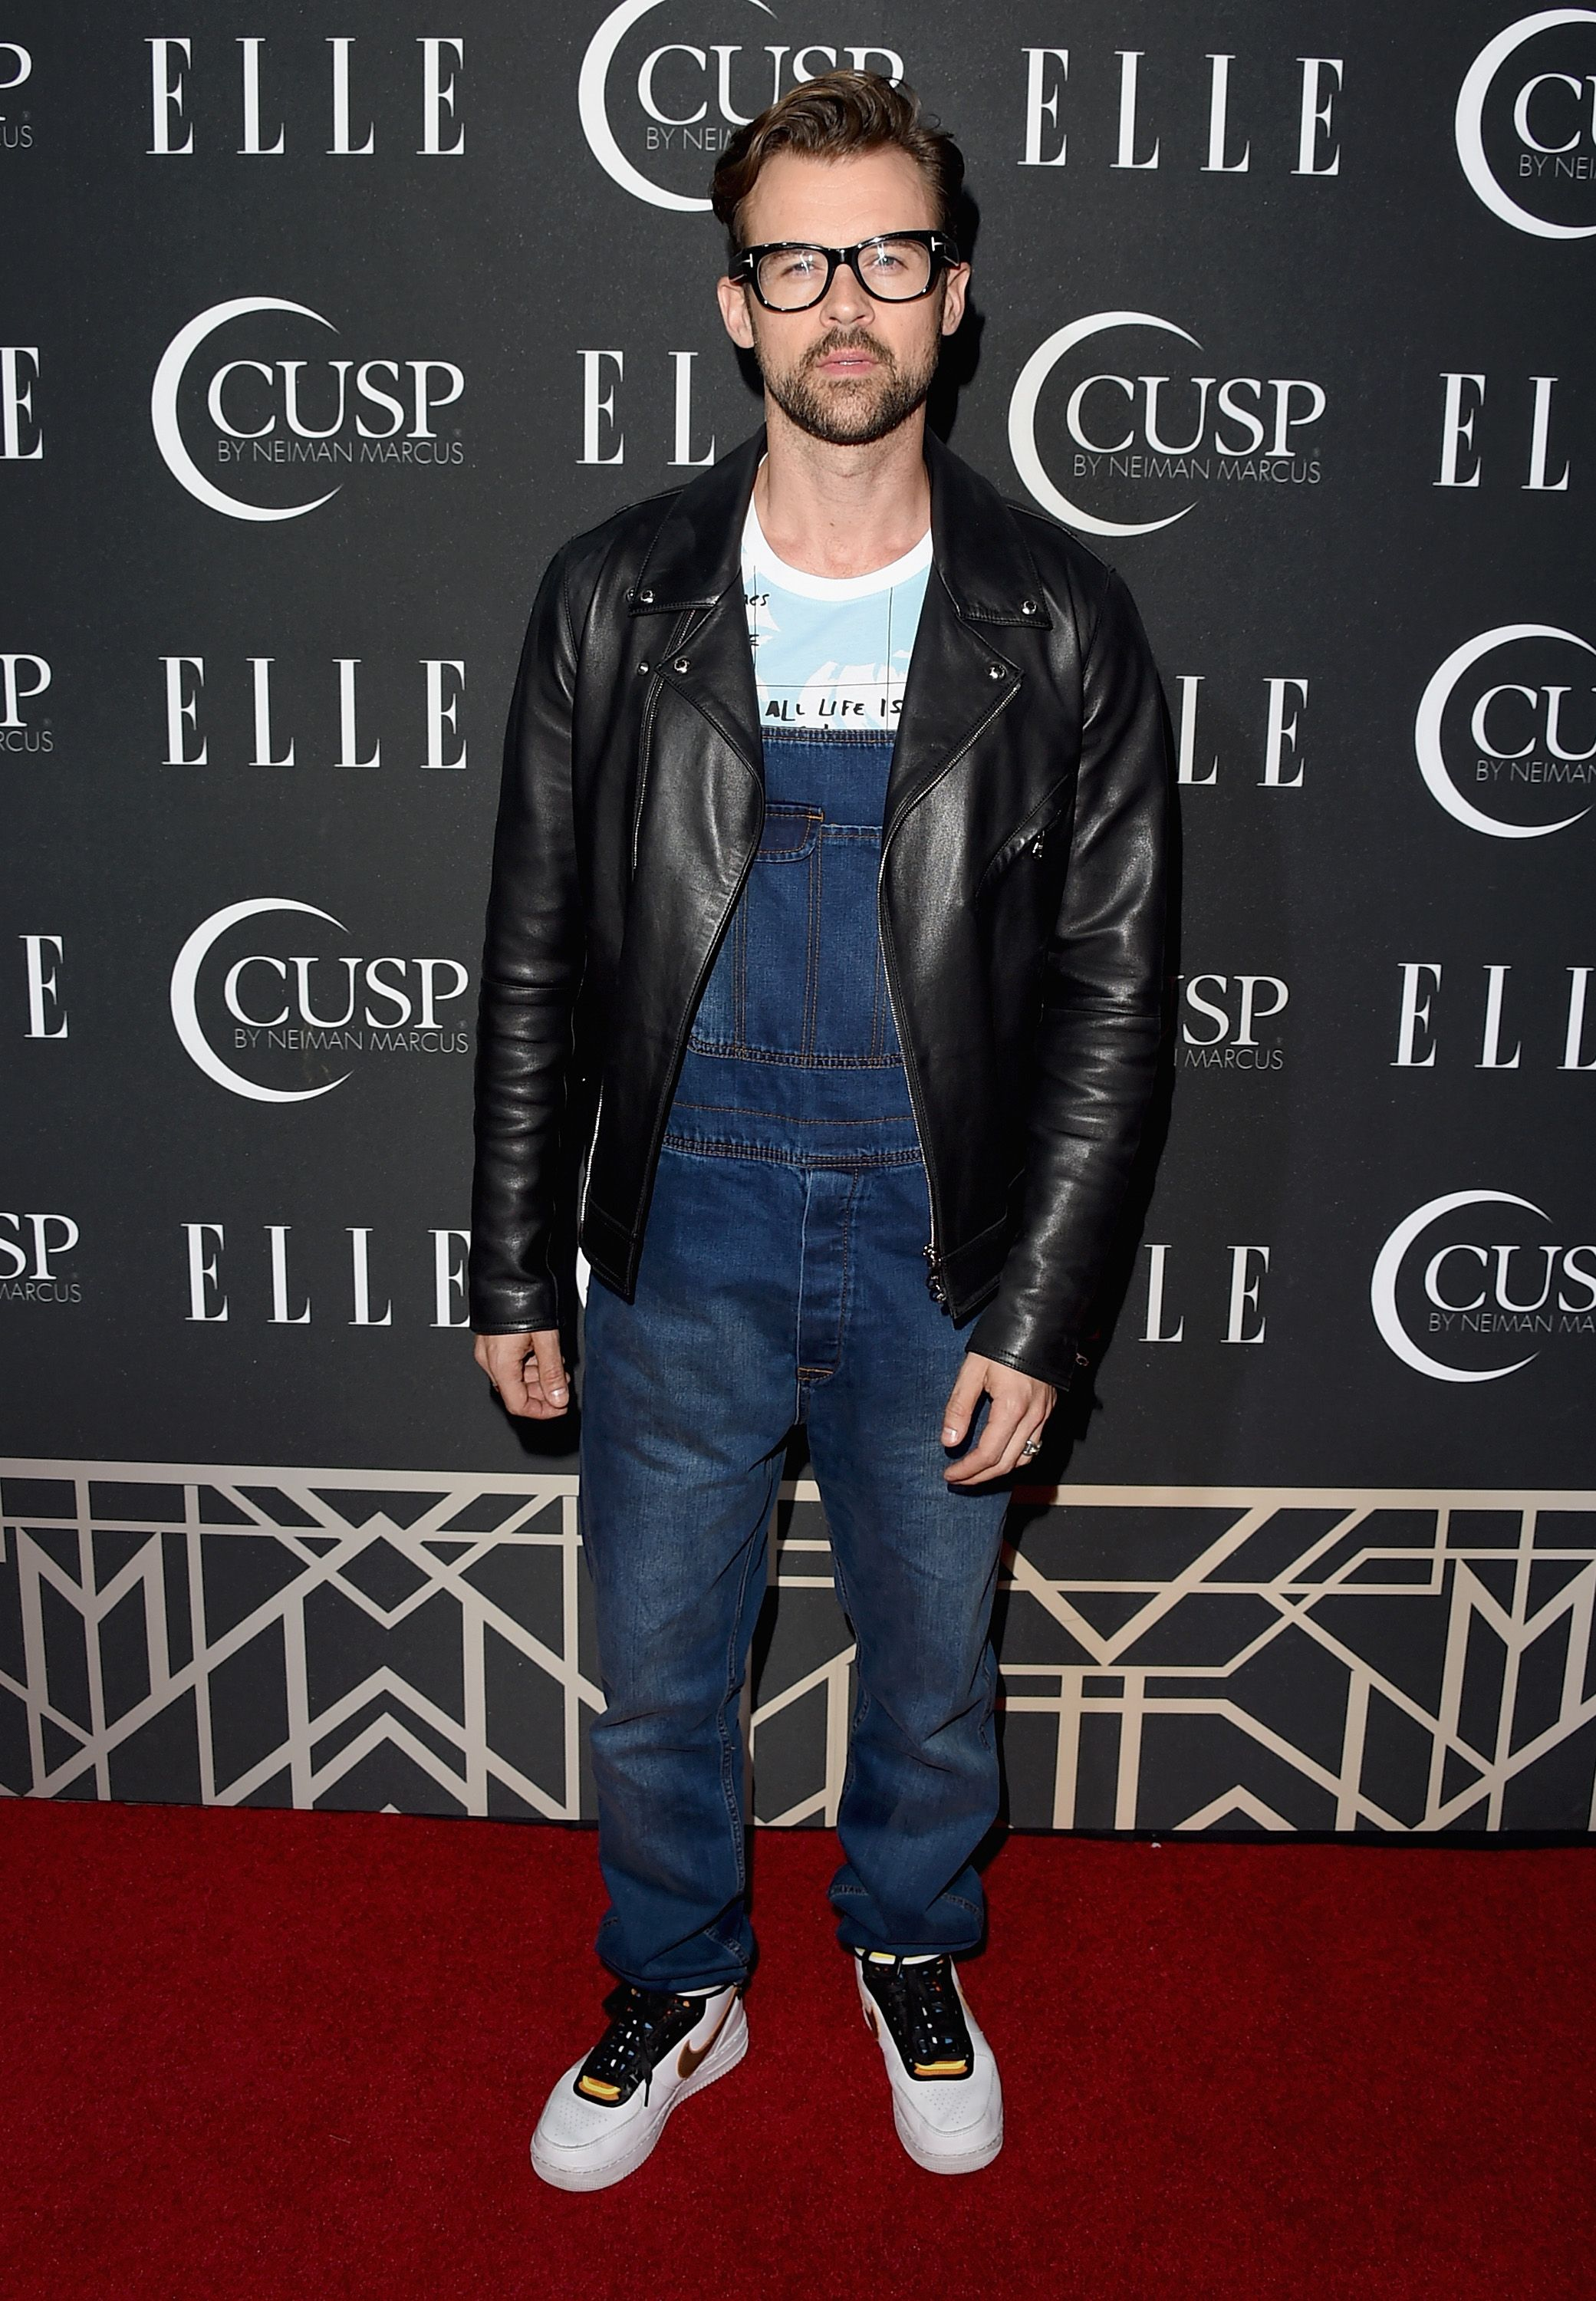 I absolutely love what this guy, Brad Goreski, chose to wear when he went up on the red carpet. Great iconoclastic style.